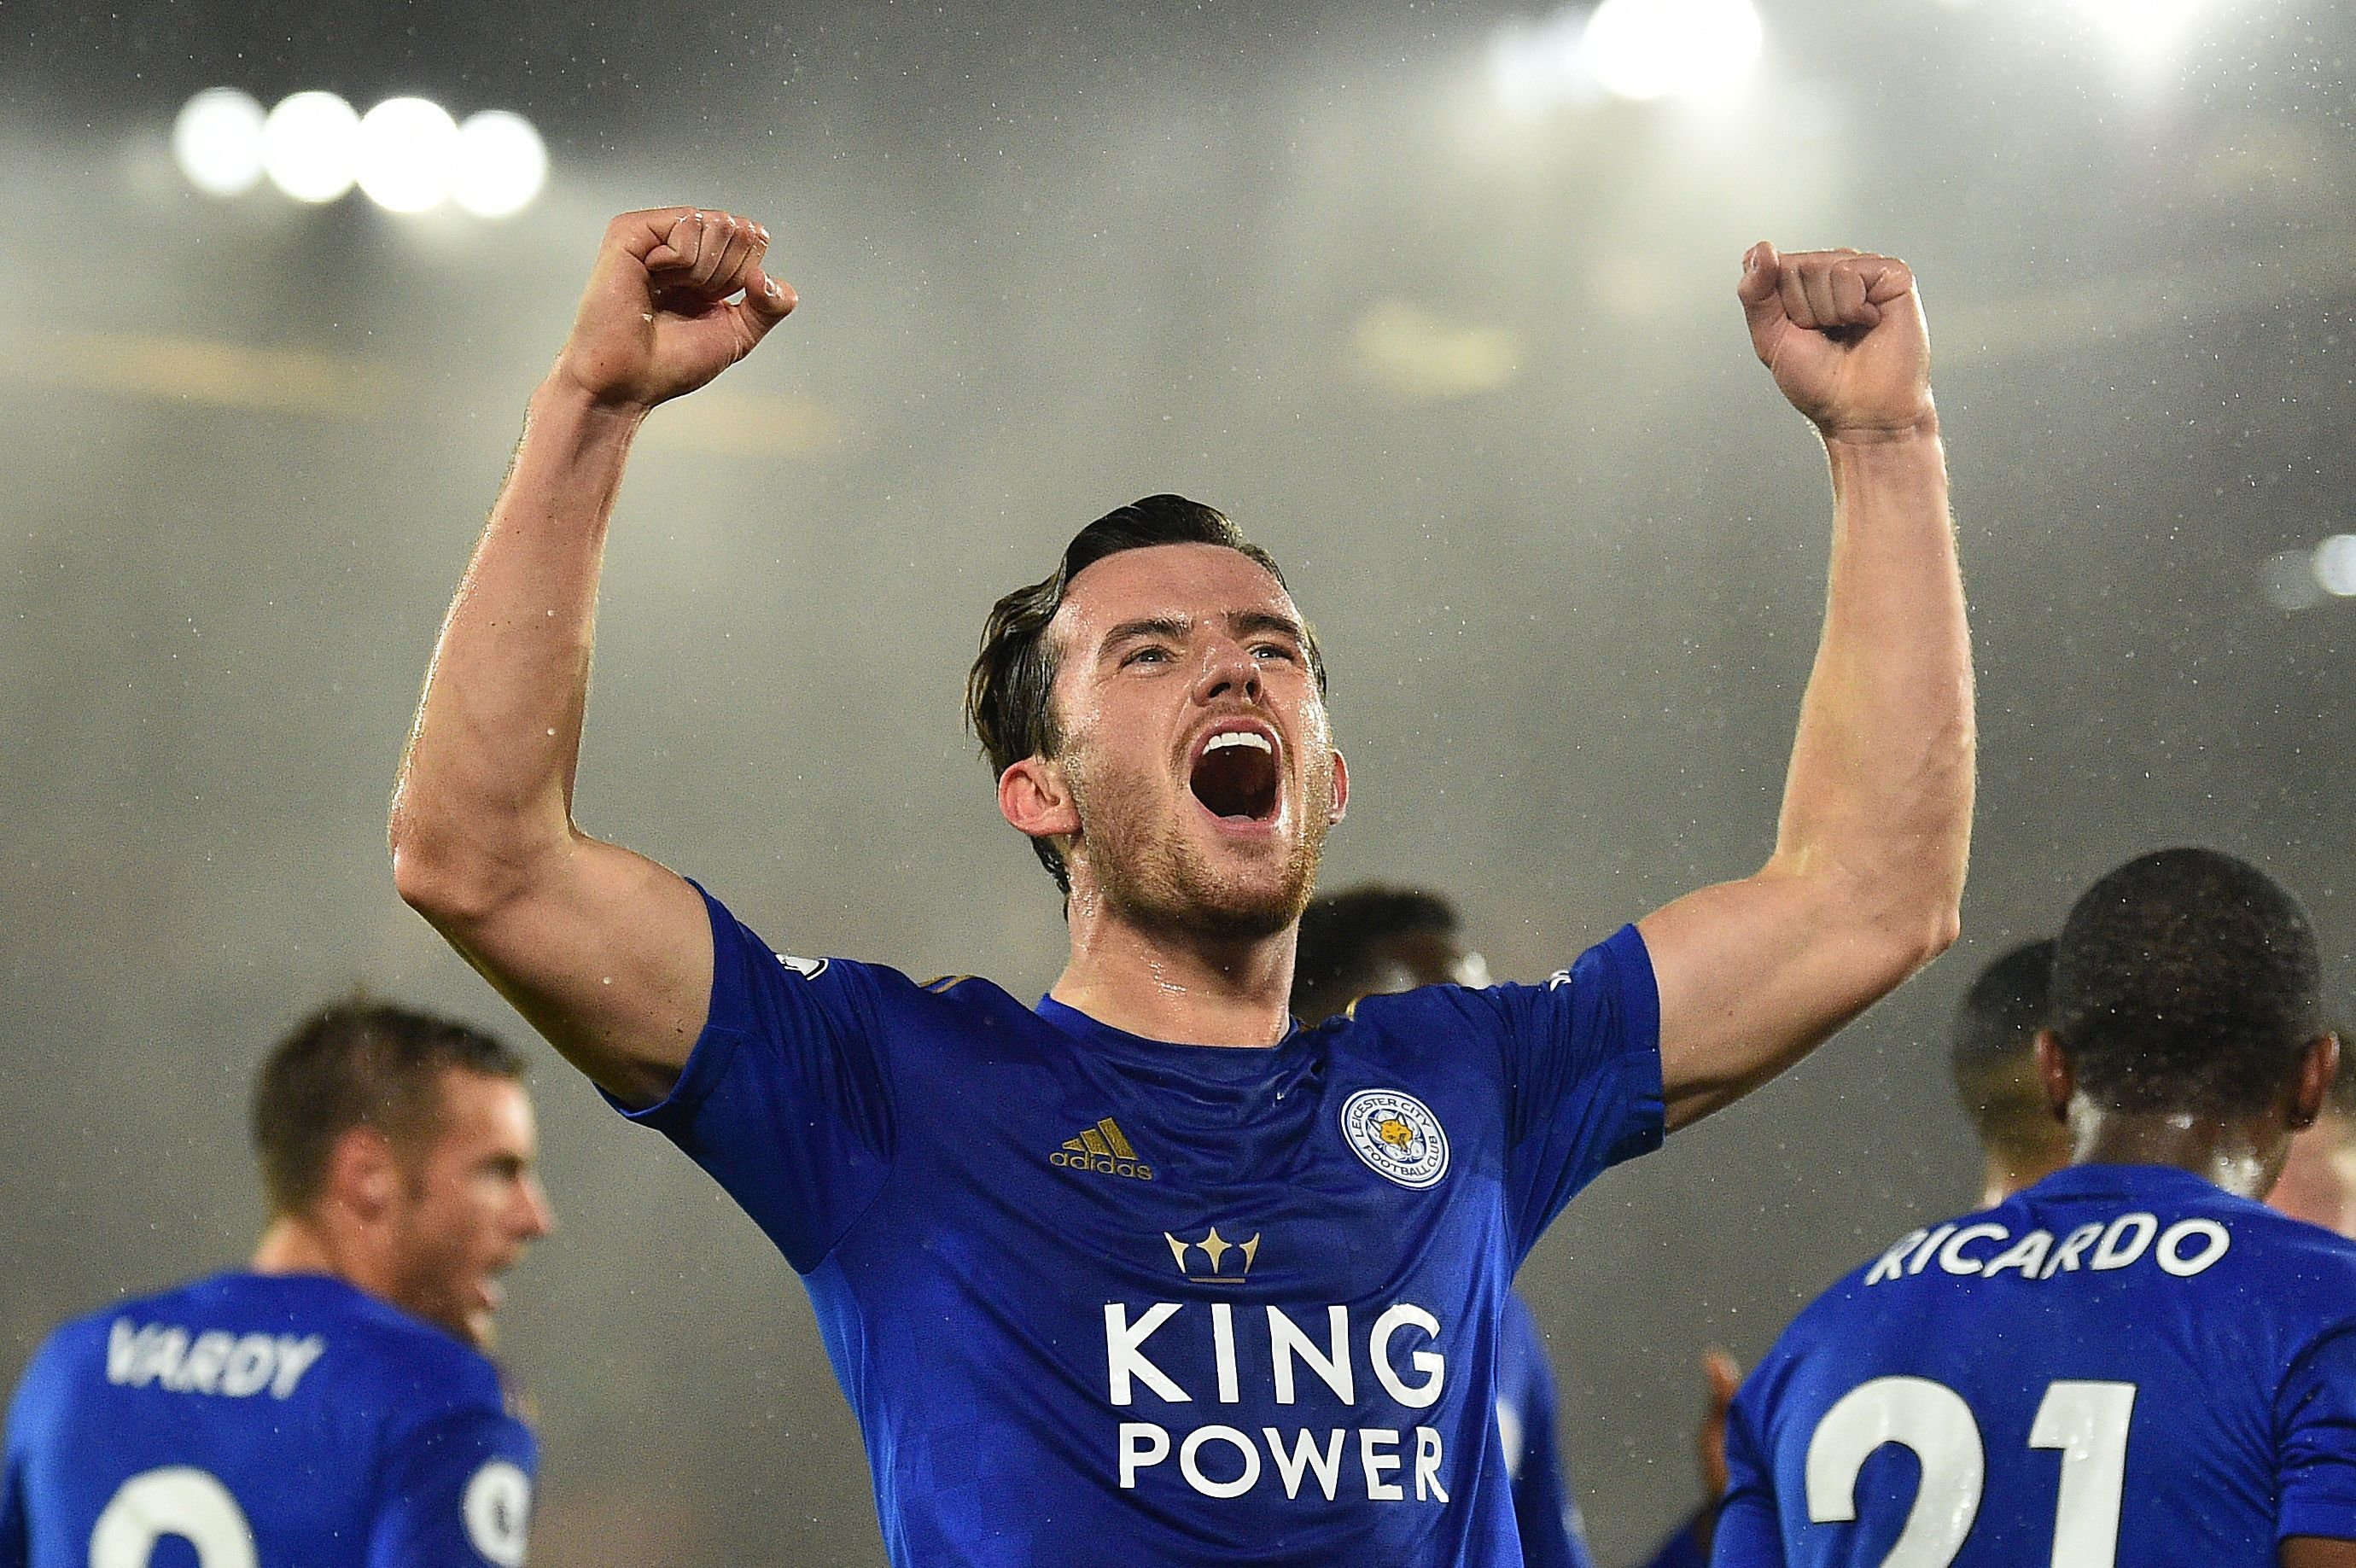 Chilwell could be the solution to Chelsea's problems at left-back